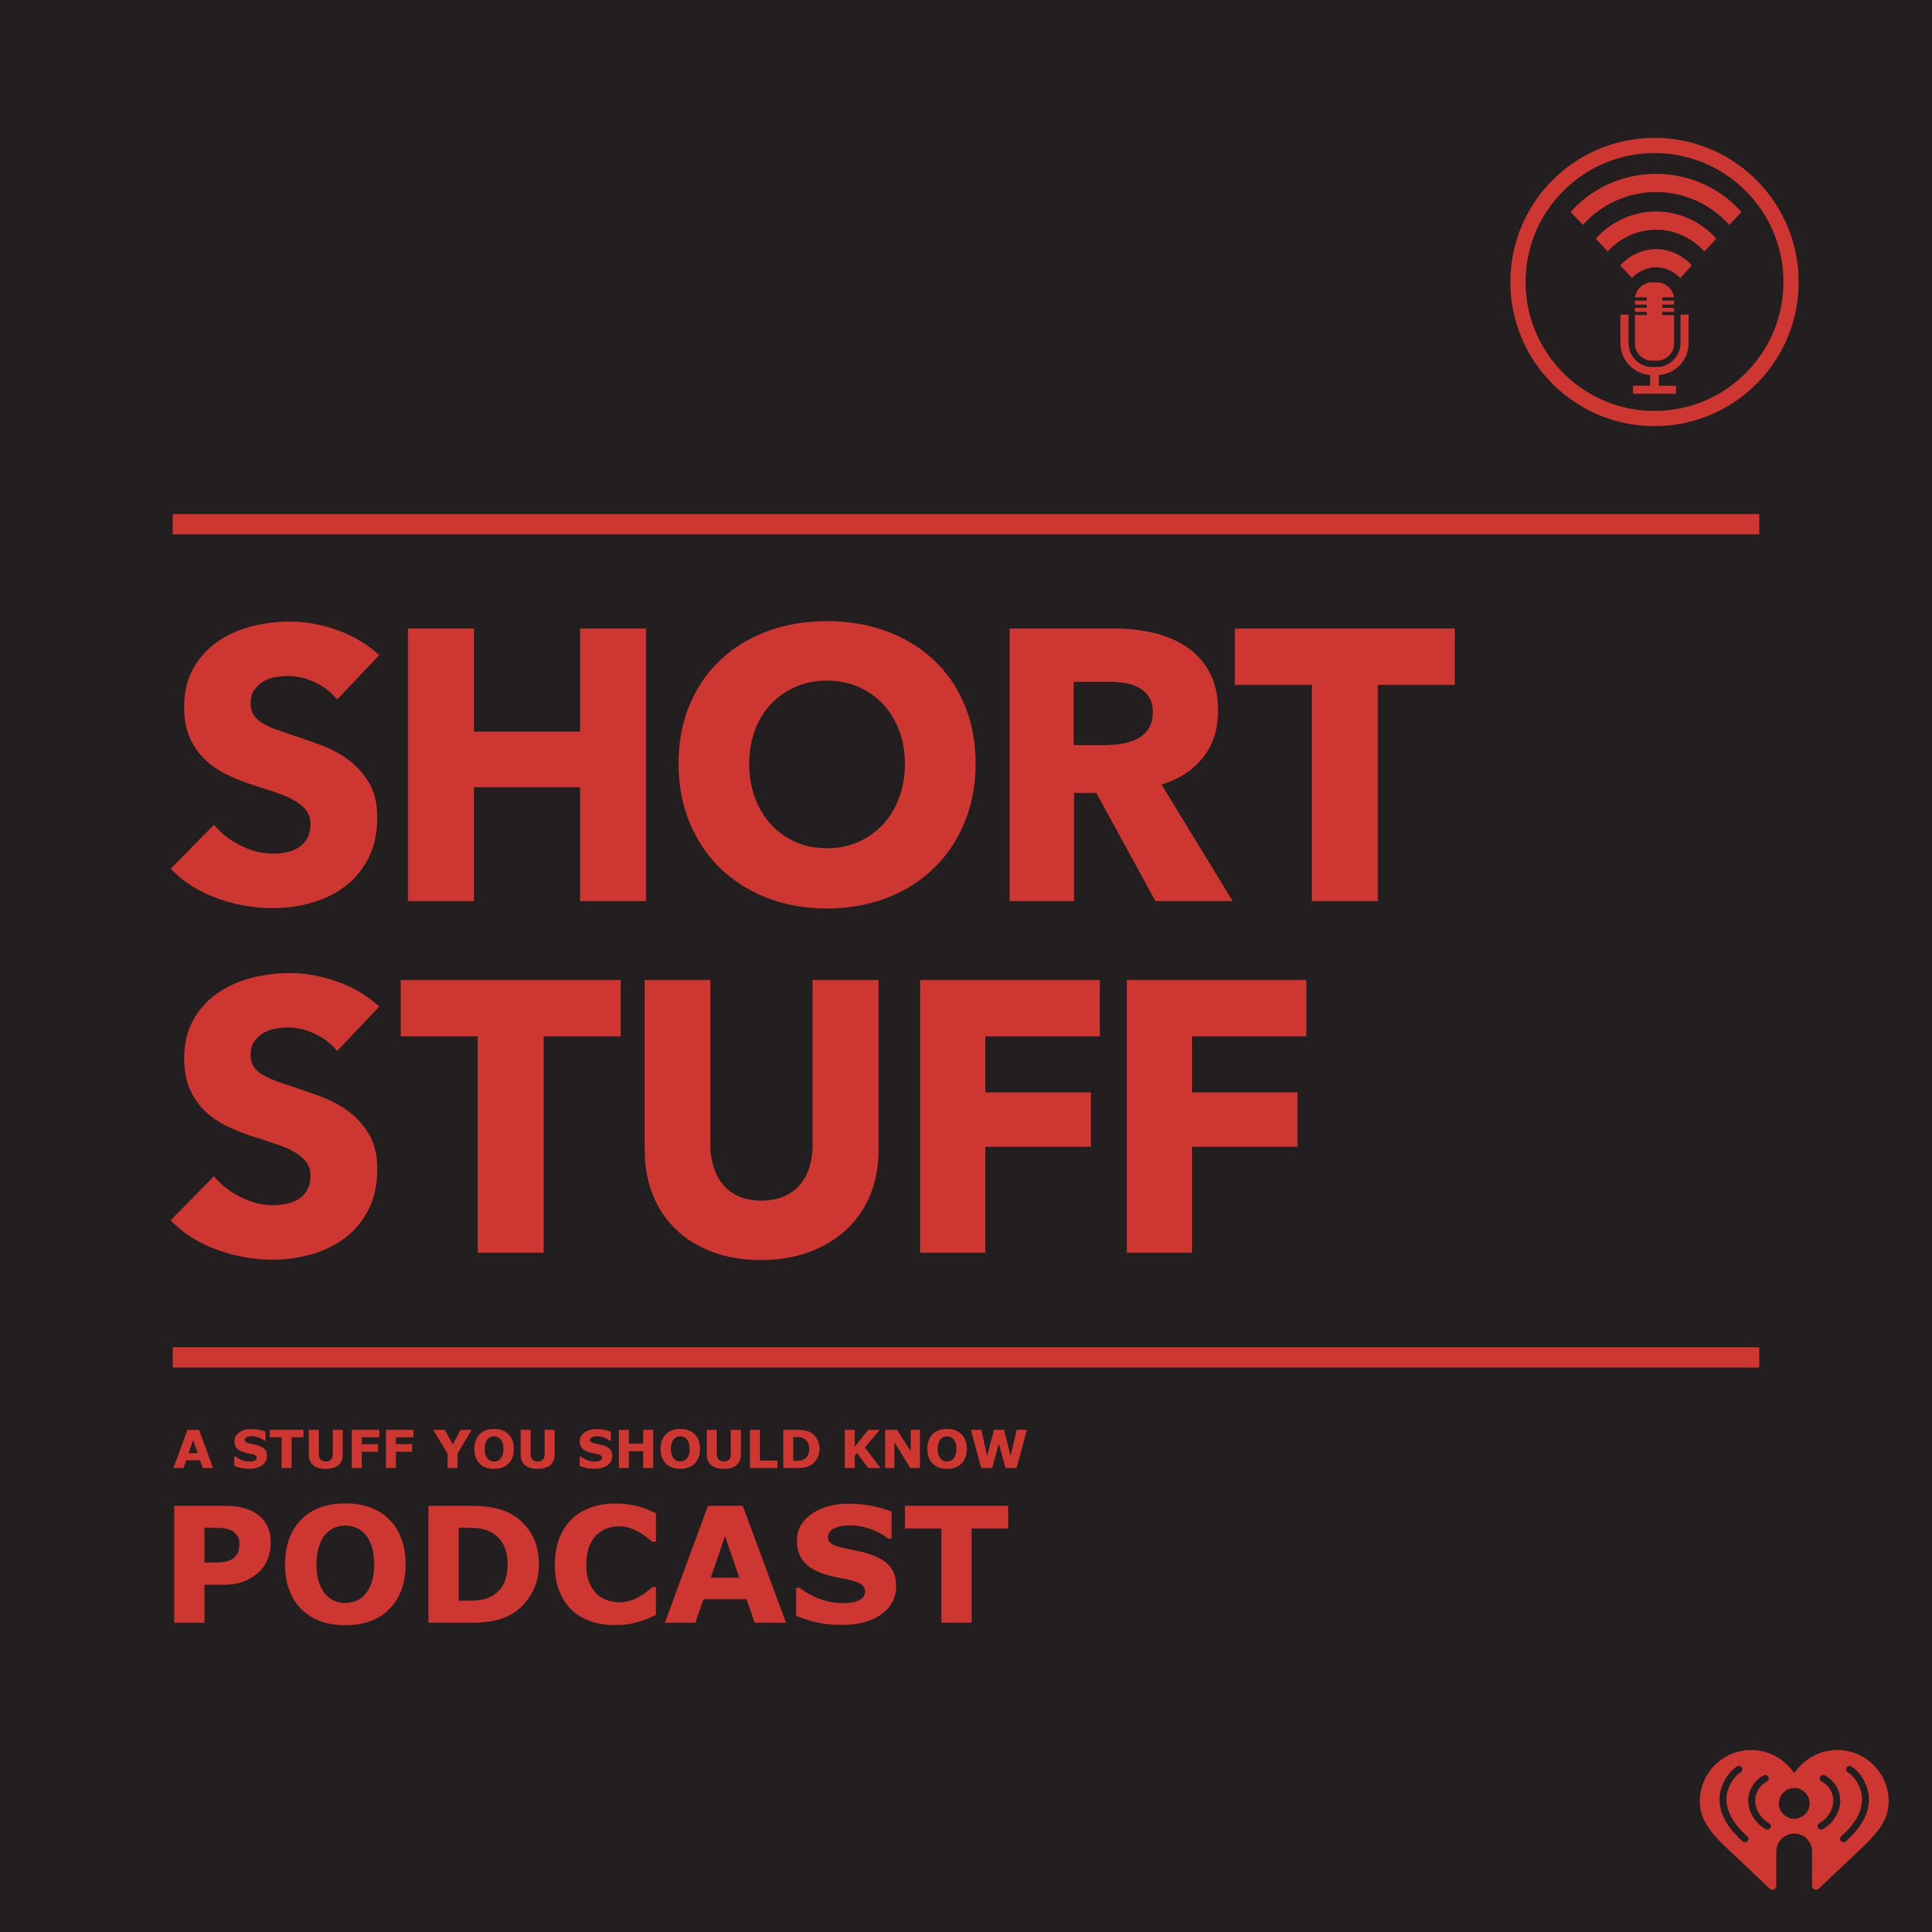 Short Stuff: What's the oldest book?